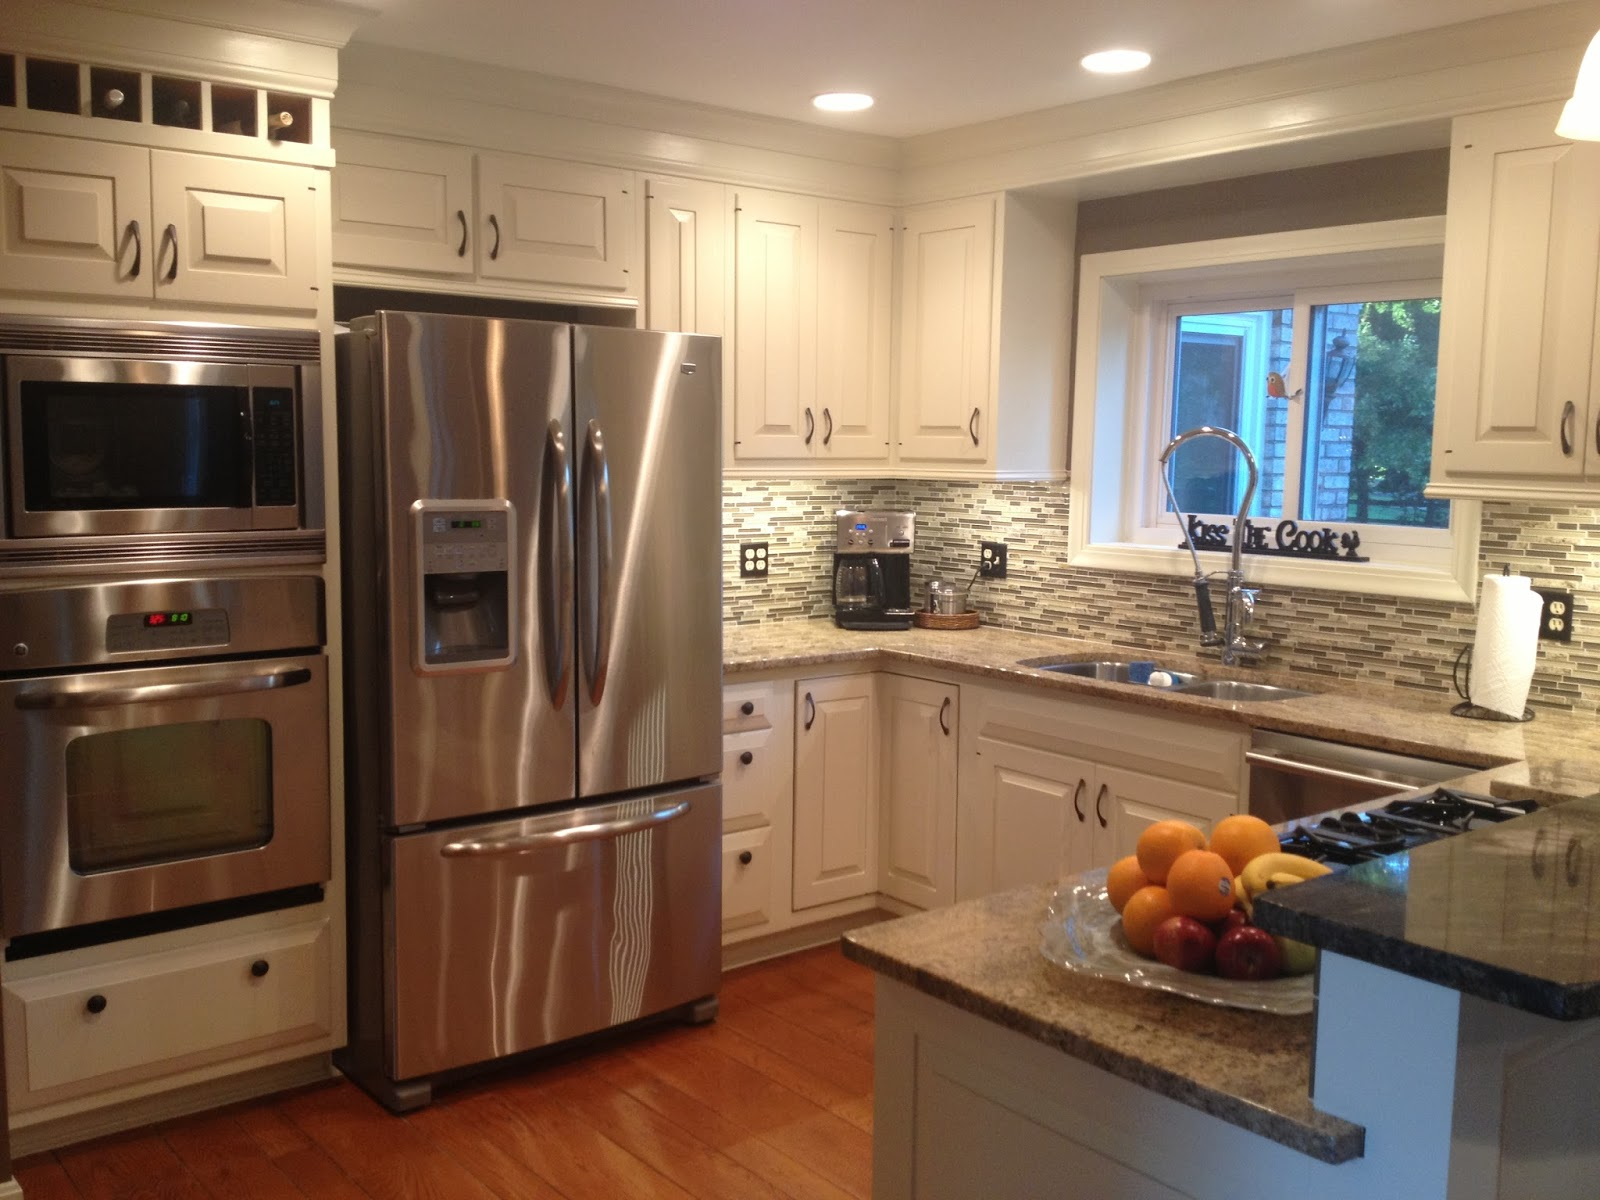 Four seasons style the new kitchen remodel on a budget for Ideas for remodeling kitchen